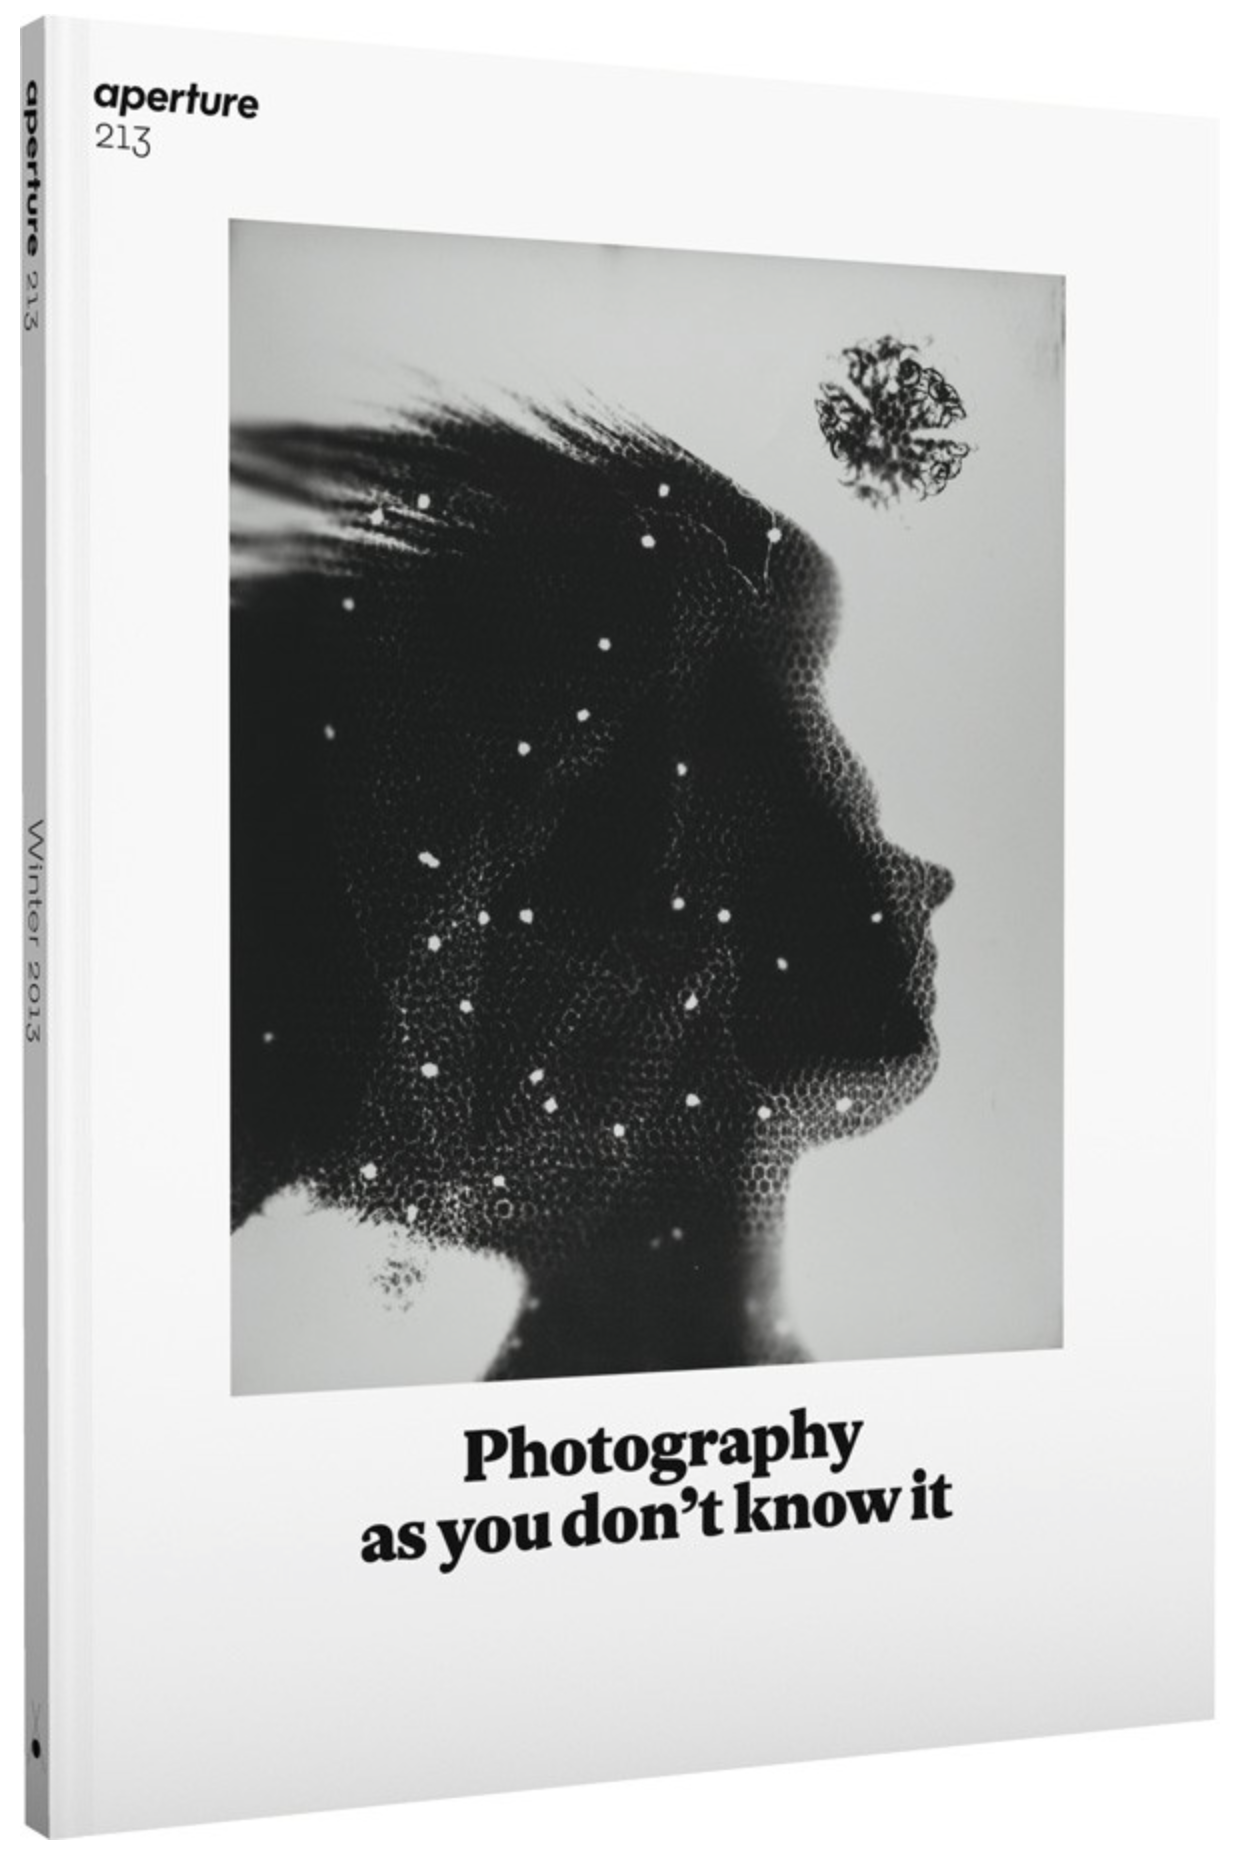 GIFT-Aperture magazine.png